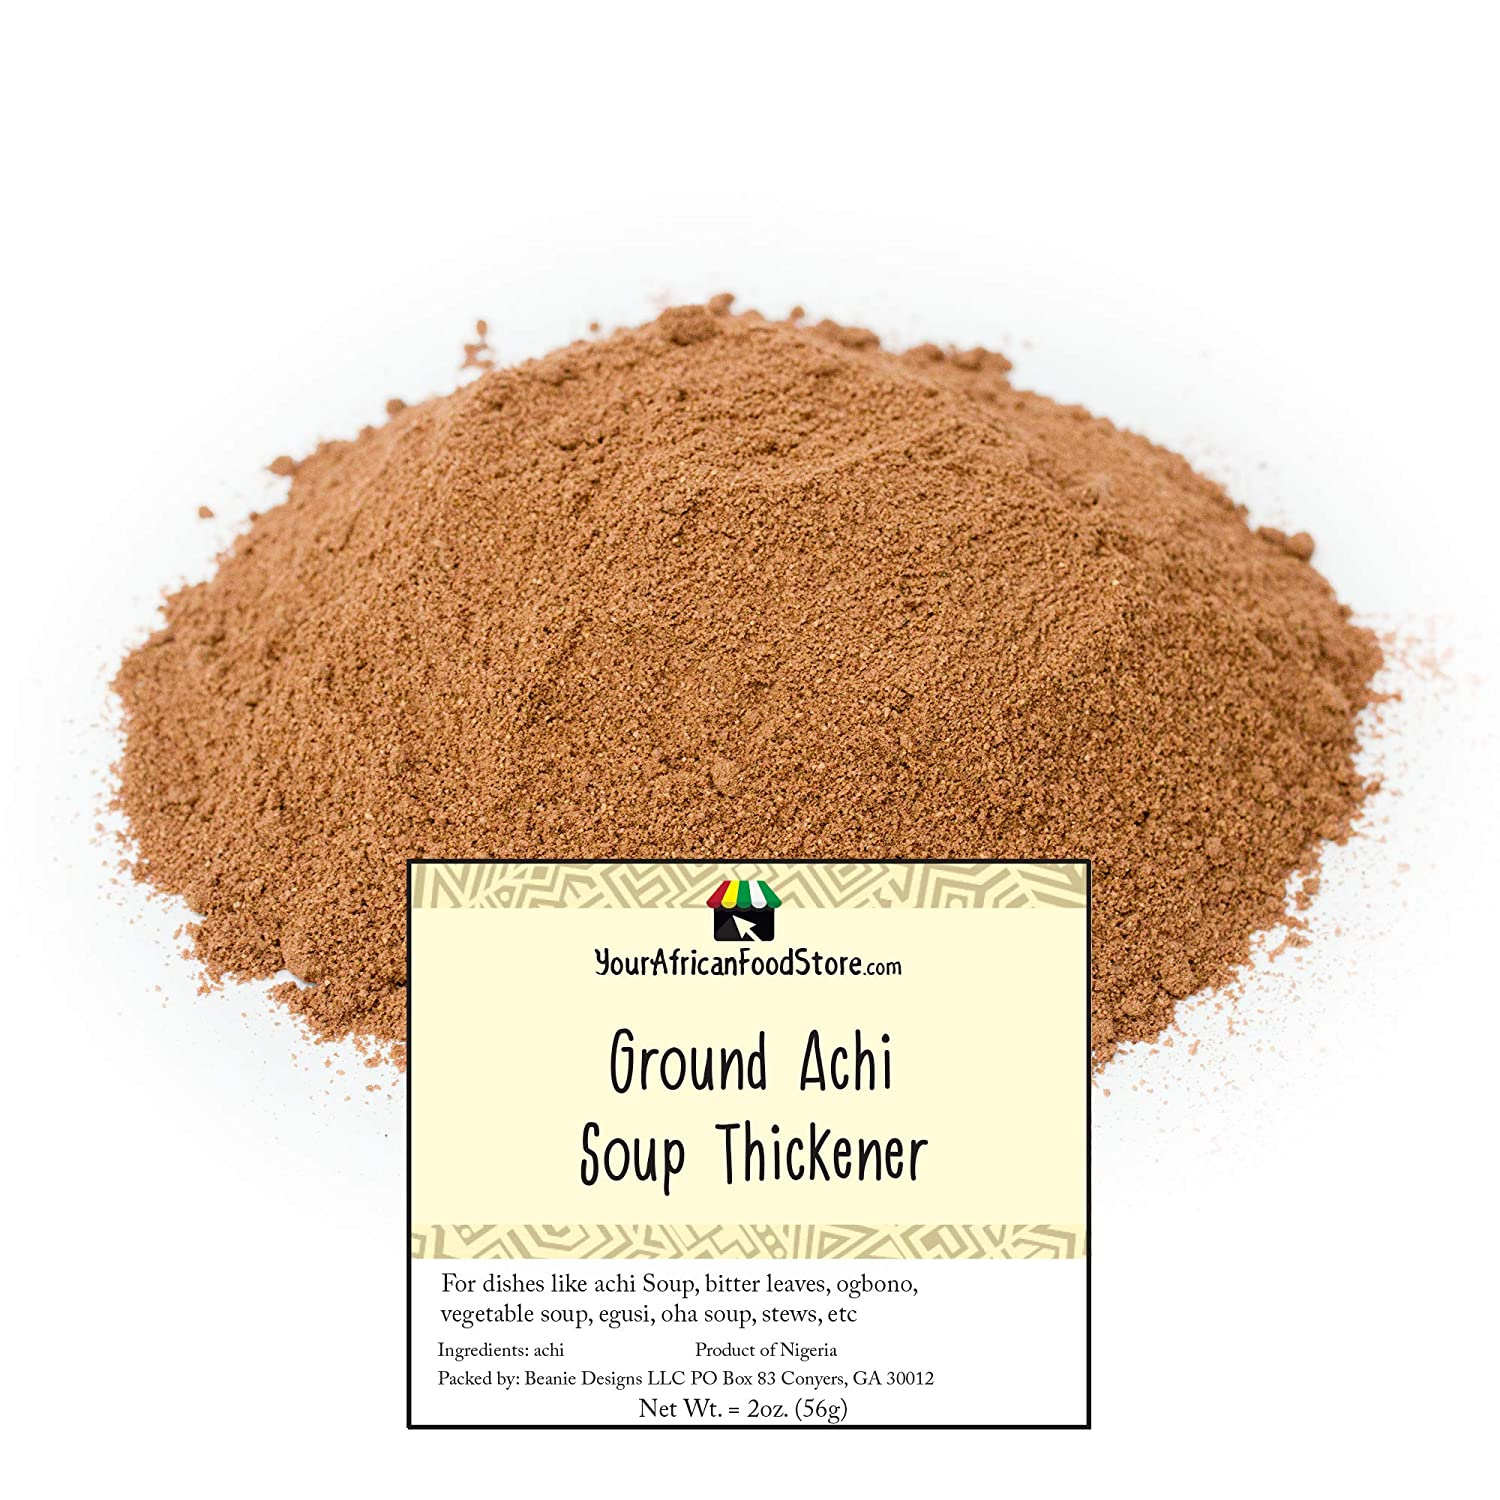 Ground Achi Soup Thickener, African Soup Thickener (100g / 3.5oz)